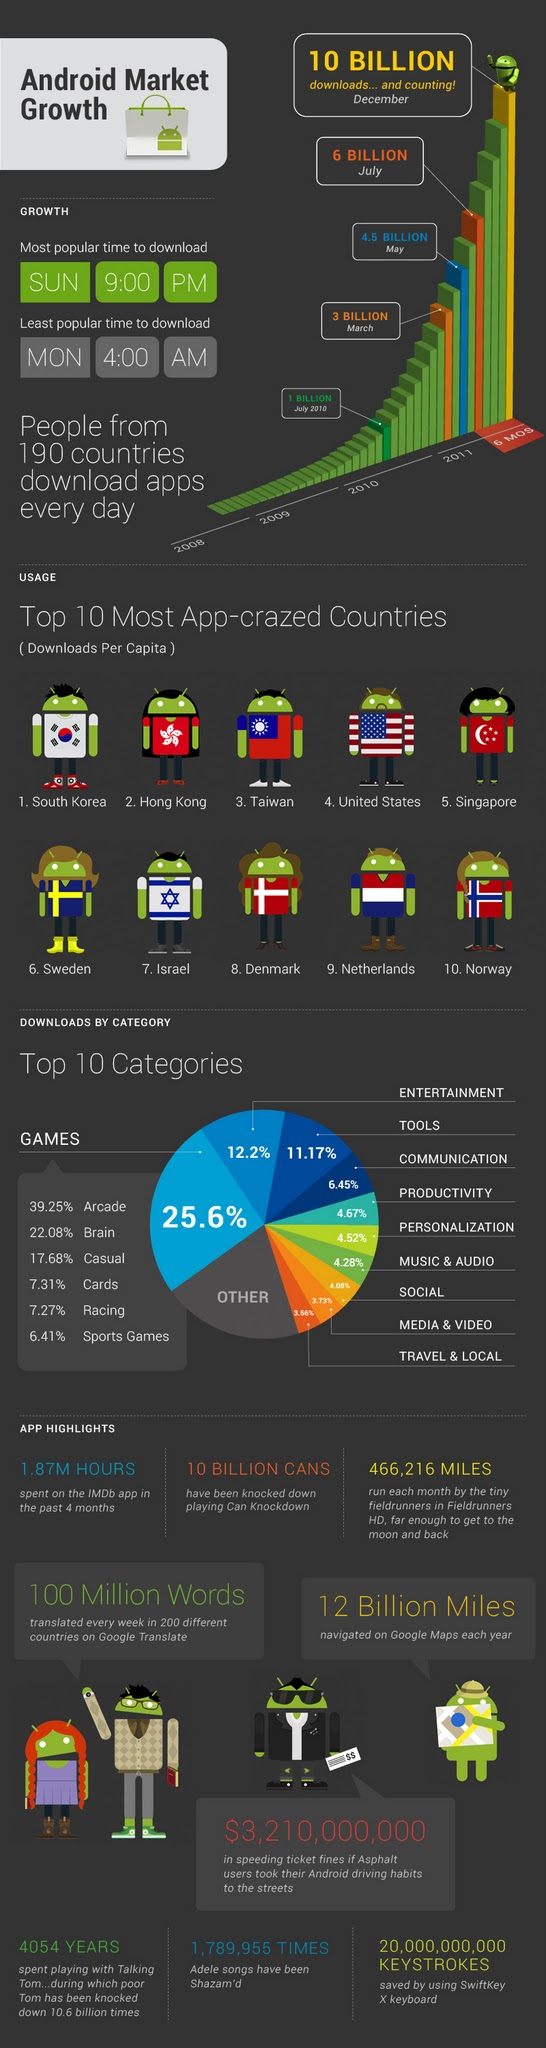 image from http://images.frandroid.com/wp-content/uploads/2011/12/android-market-google-infographie-.jpg